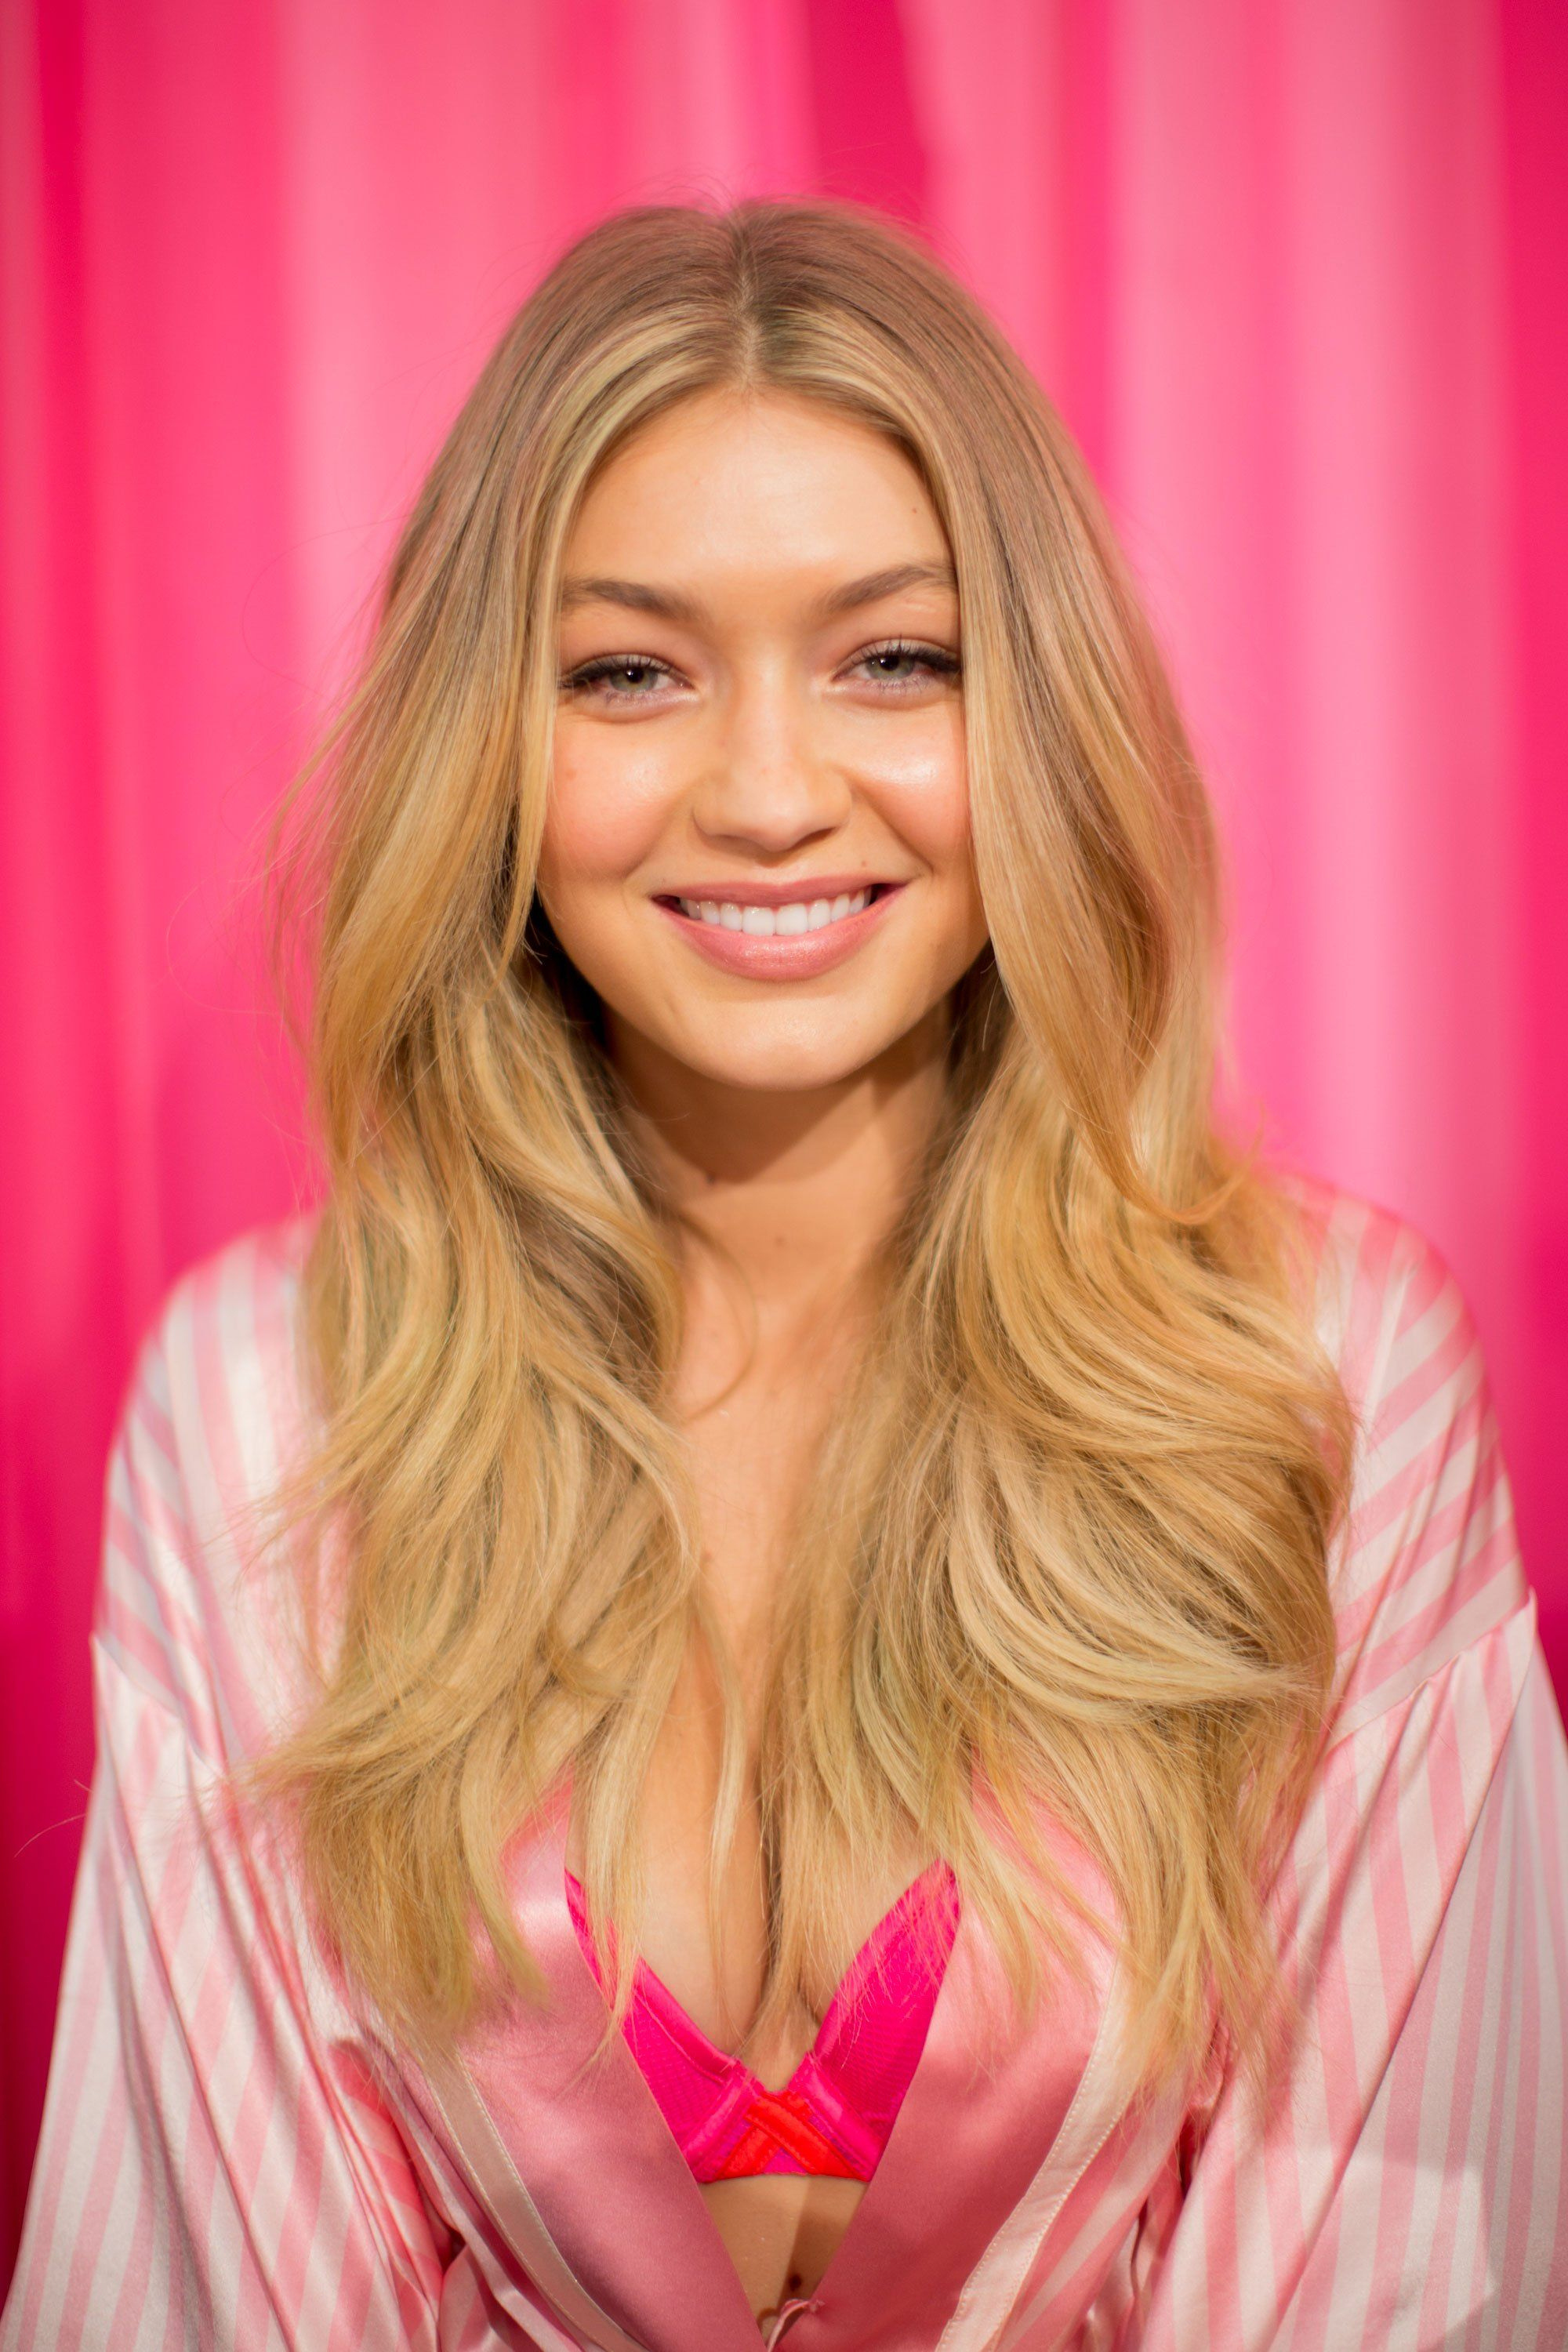 the new victoria's secret bombshell code | hair styles +